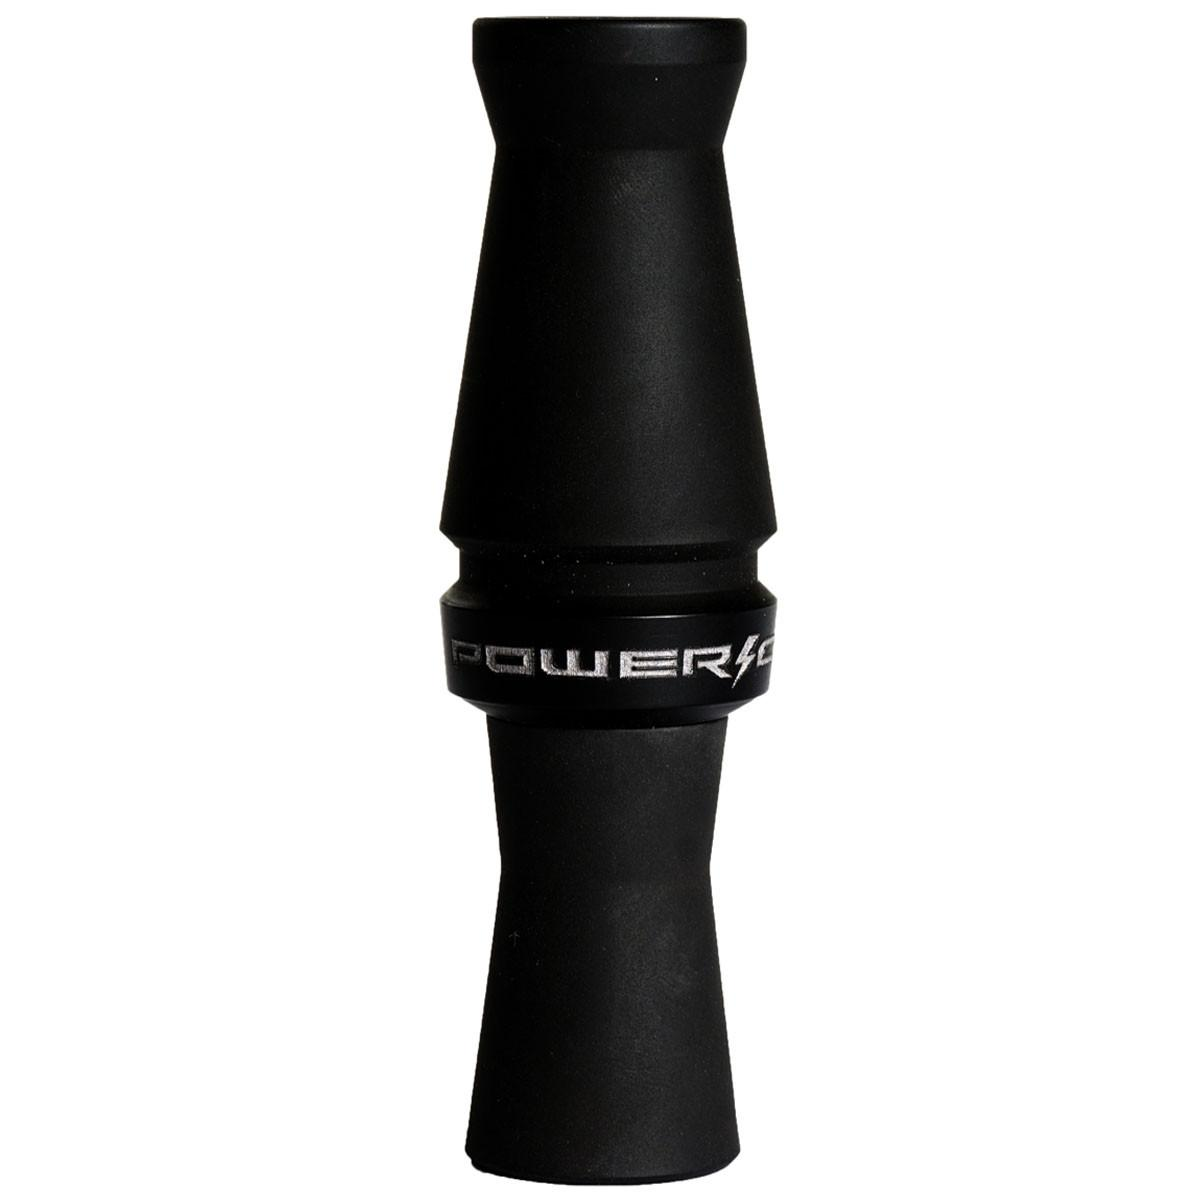 Powercalls Force Canada Goose Call_1.jpg